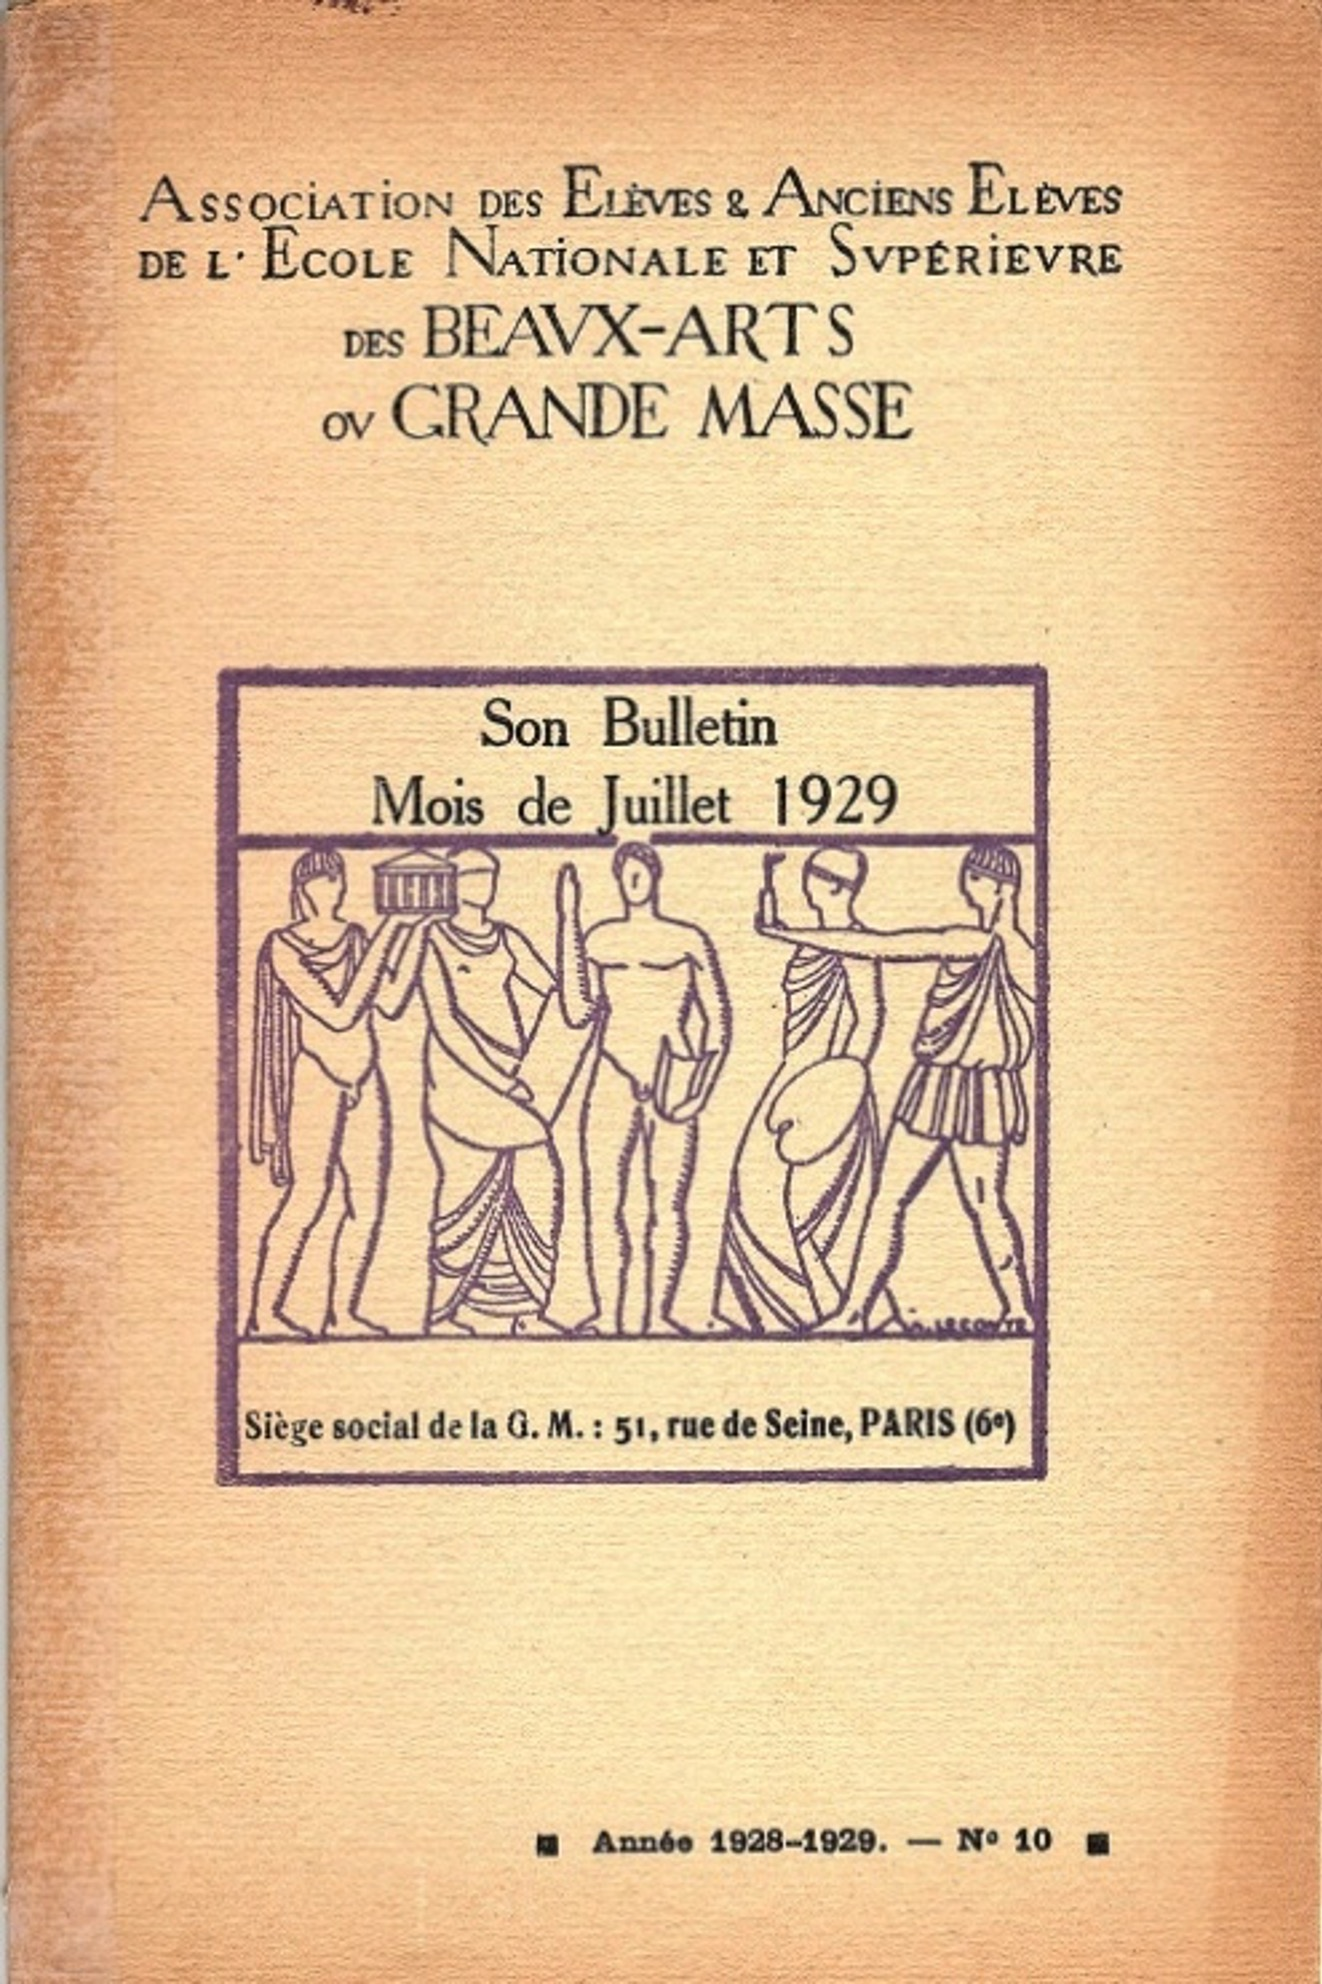 192907_GMBA_Bulletin-Couverture.jpg